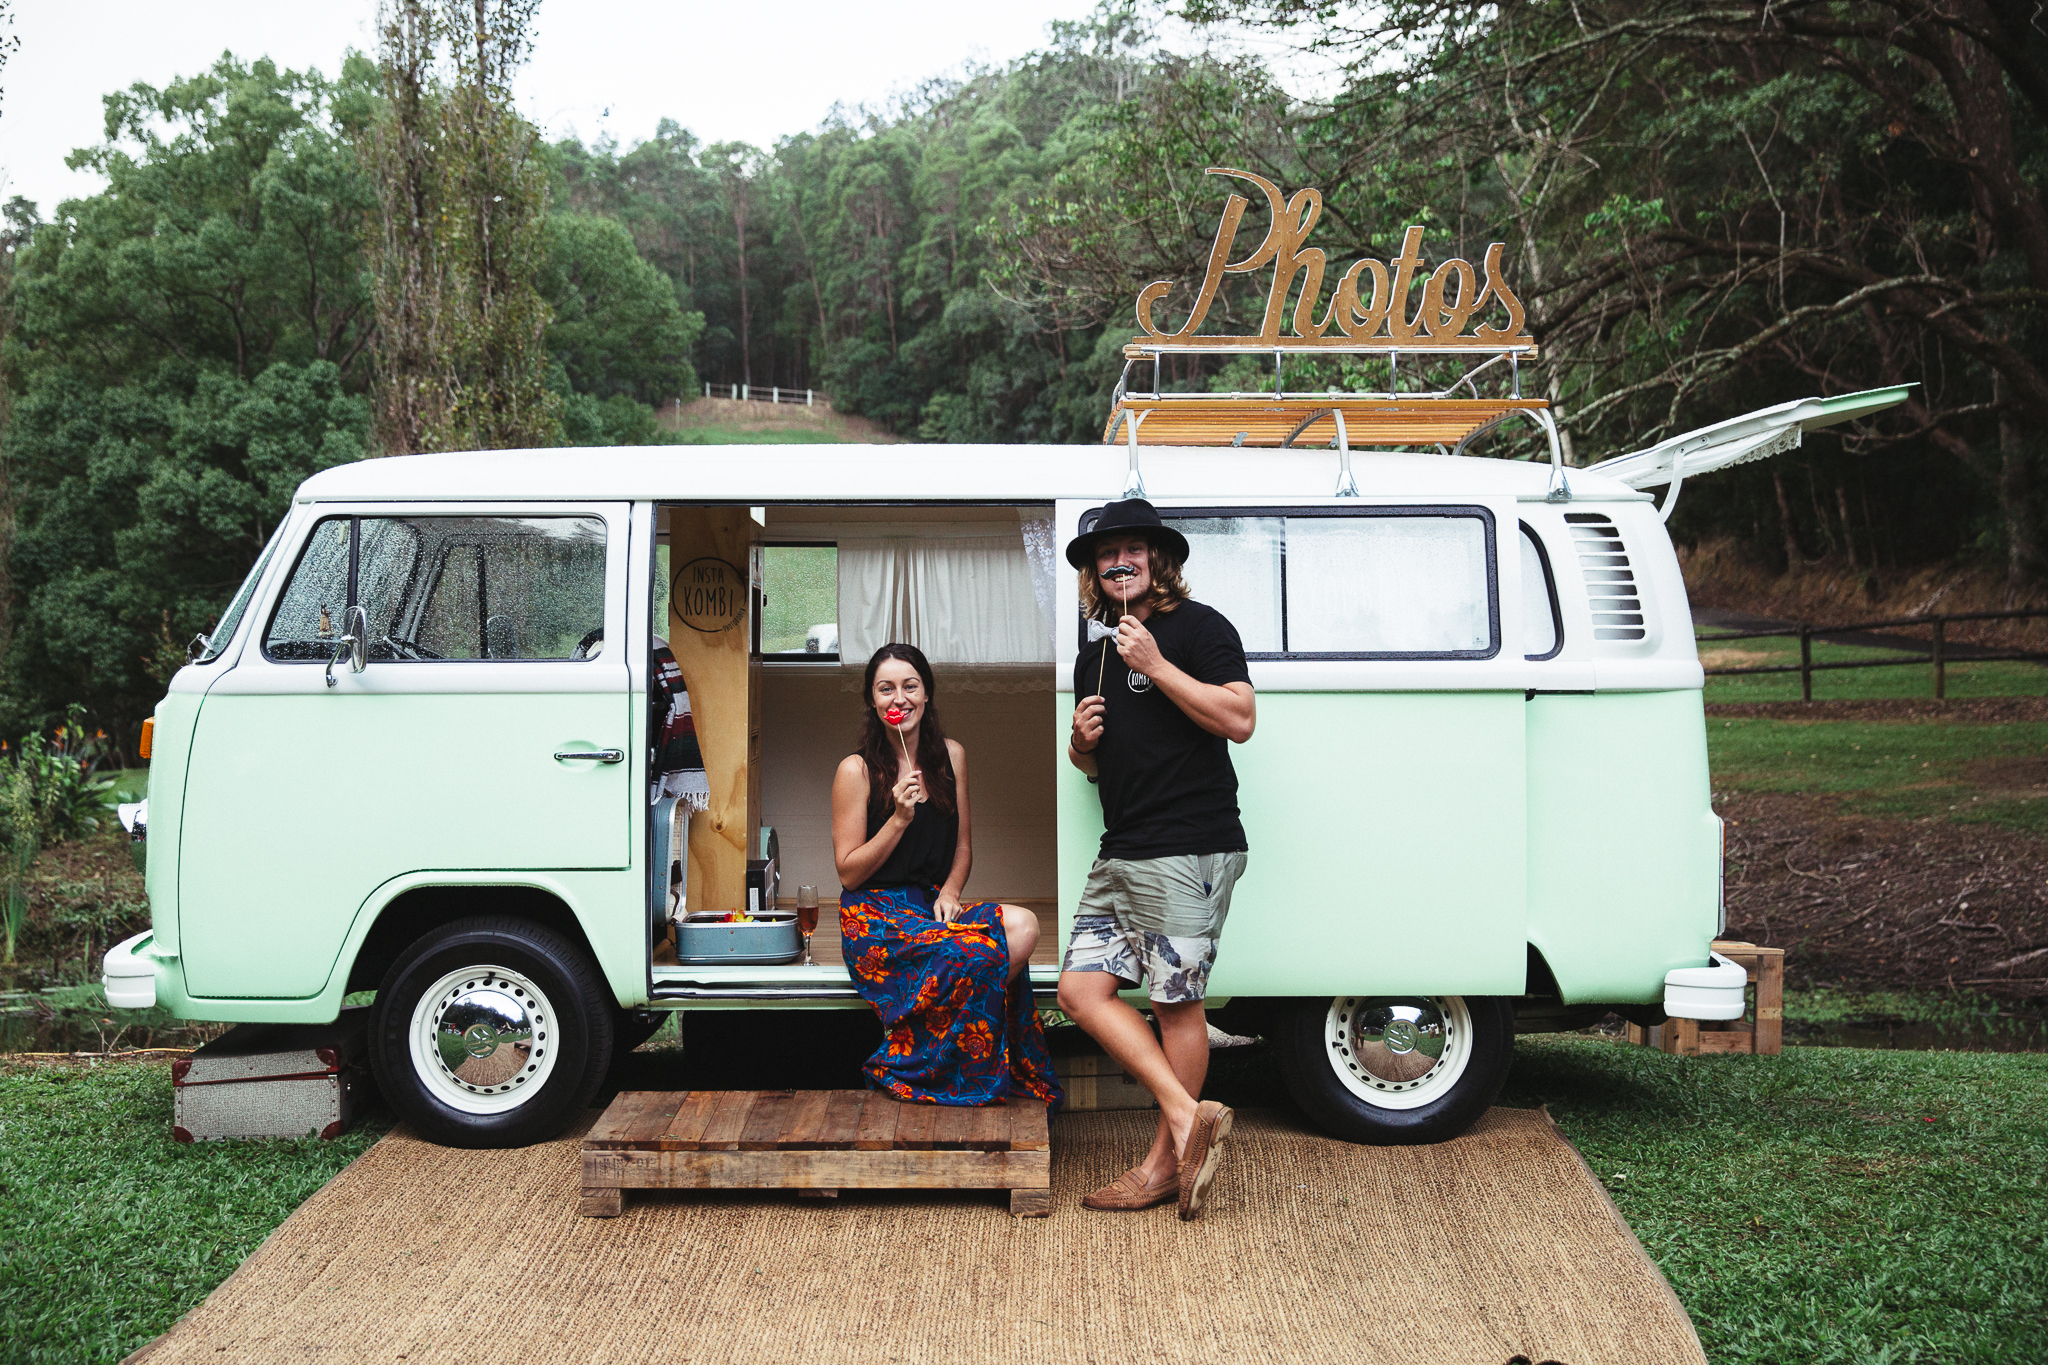 Gold coast tipis, wedding, marquee hire, gold coast, photo booth, wedfest